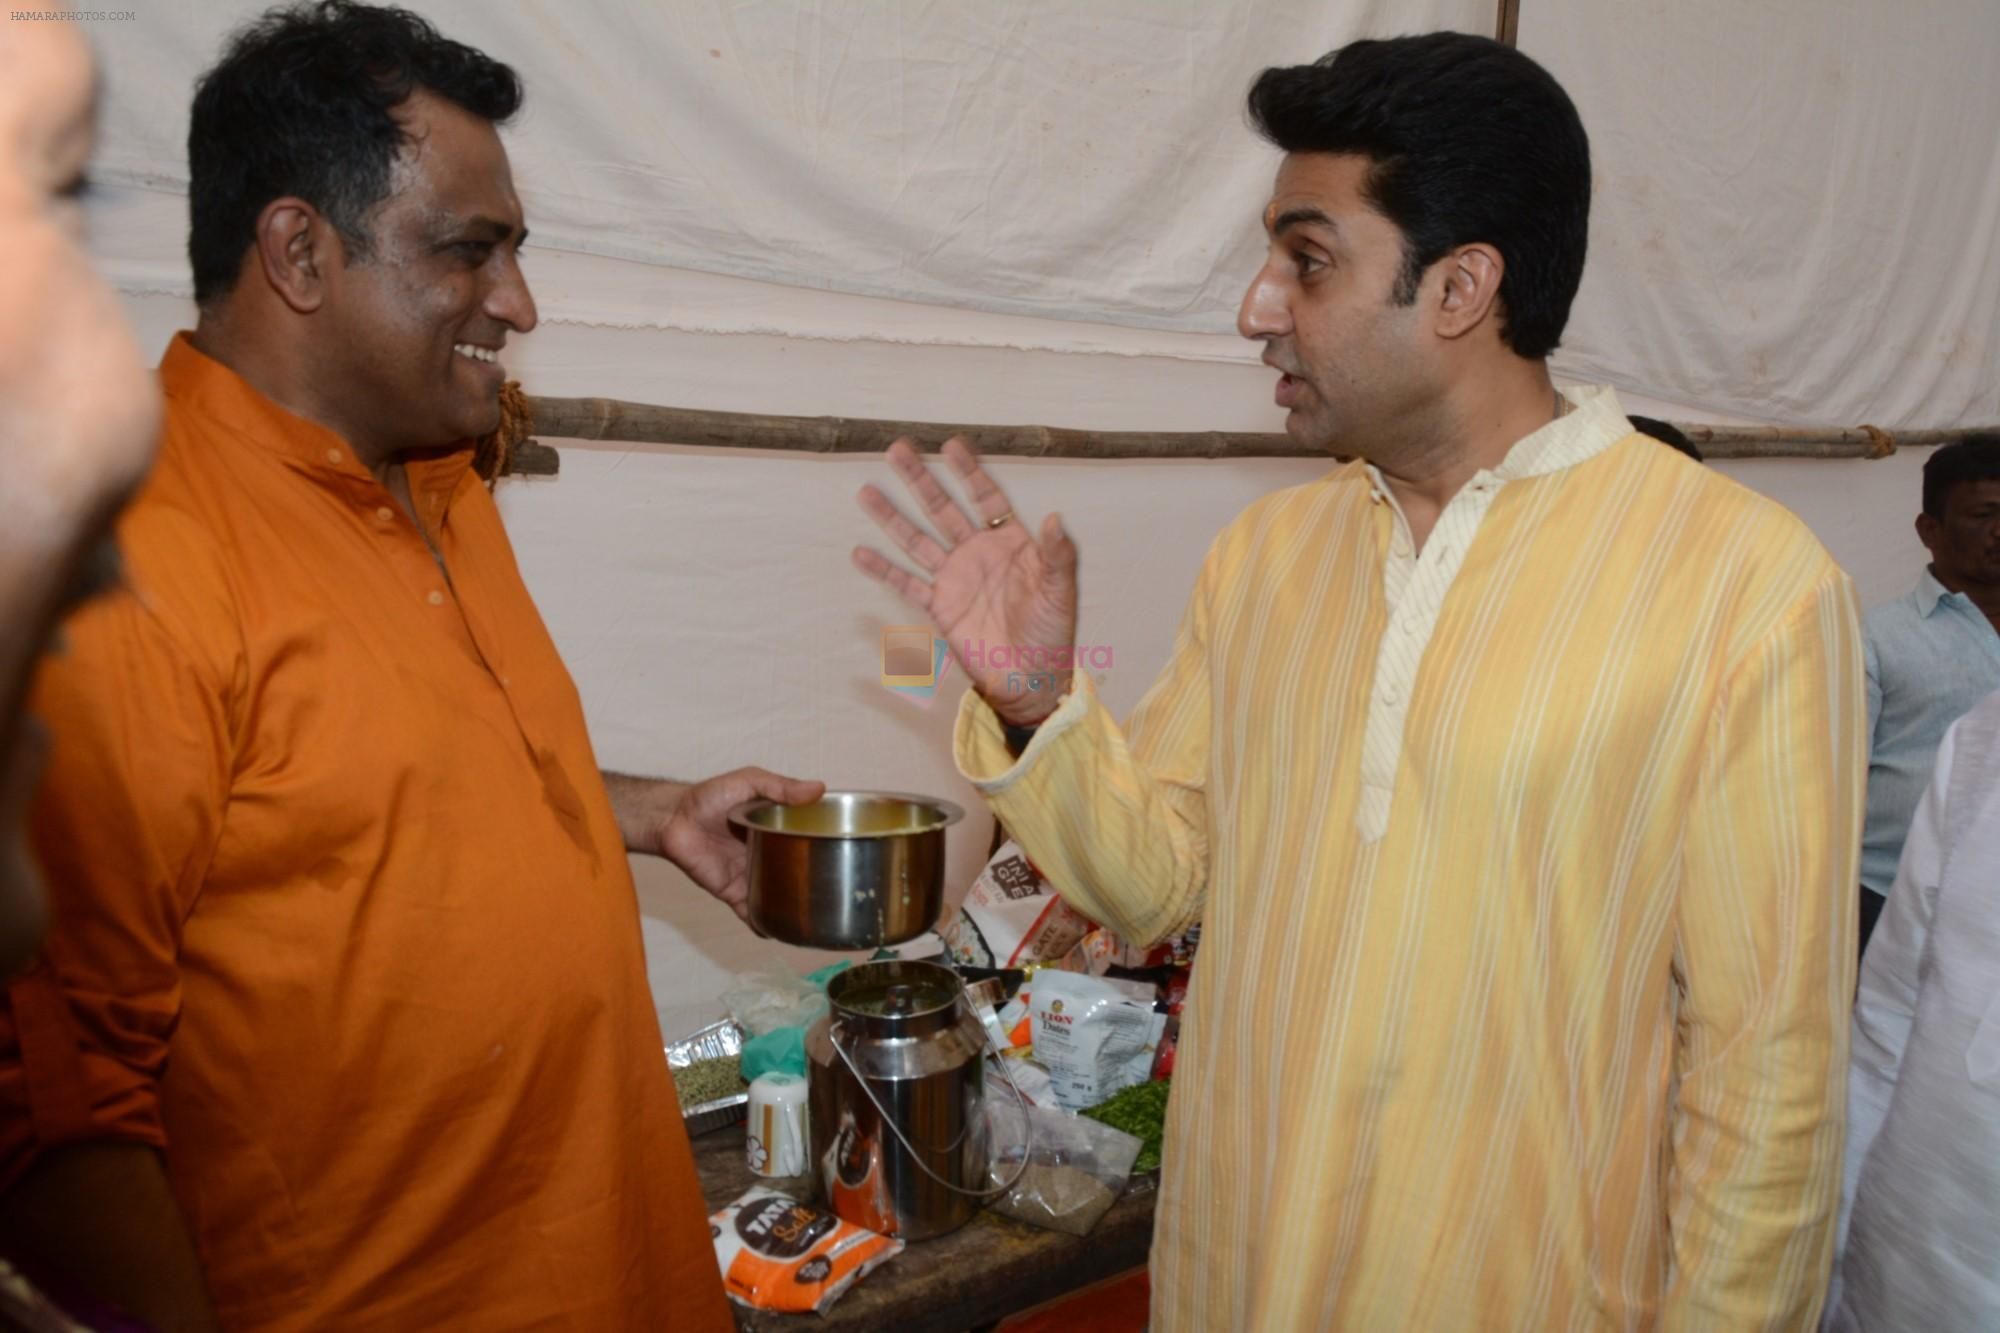 Abhishek Bachchan at Saraswati pujan at Anurag Basu's house in goregaon on 10th Feb 2019